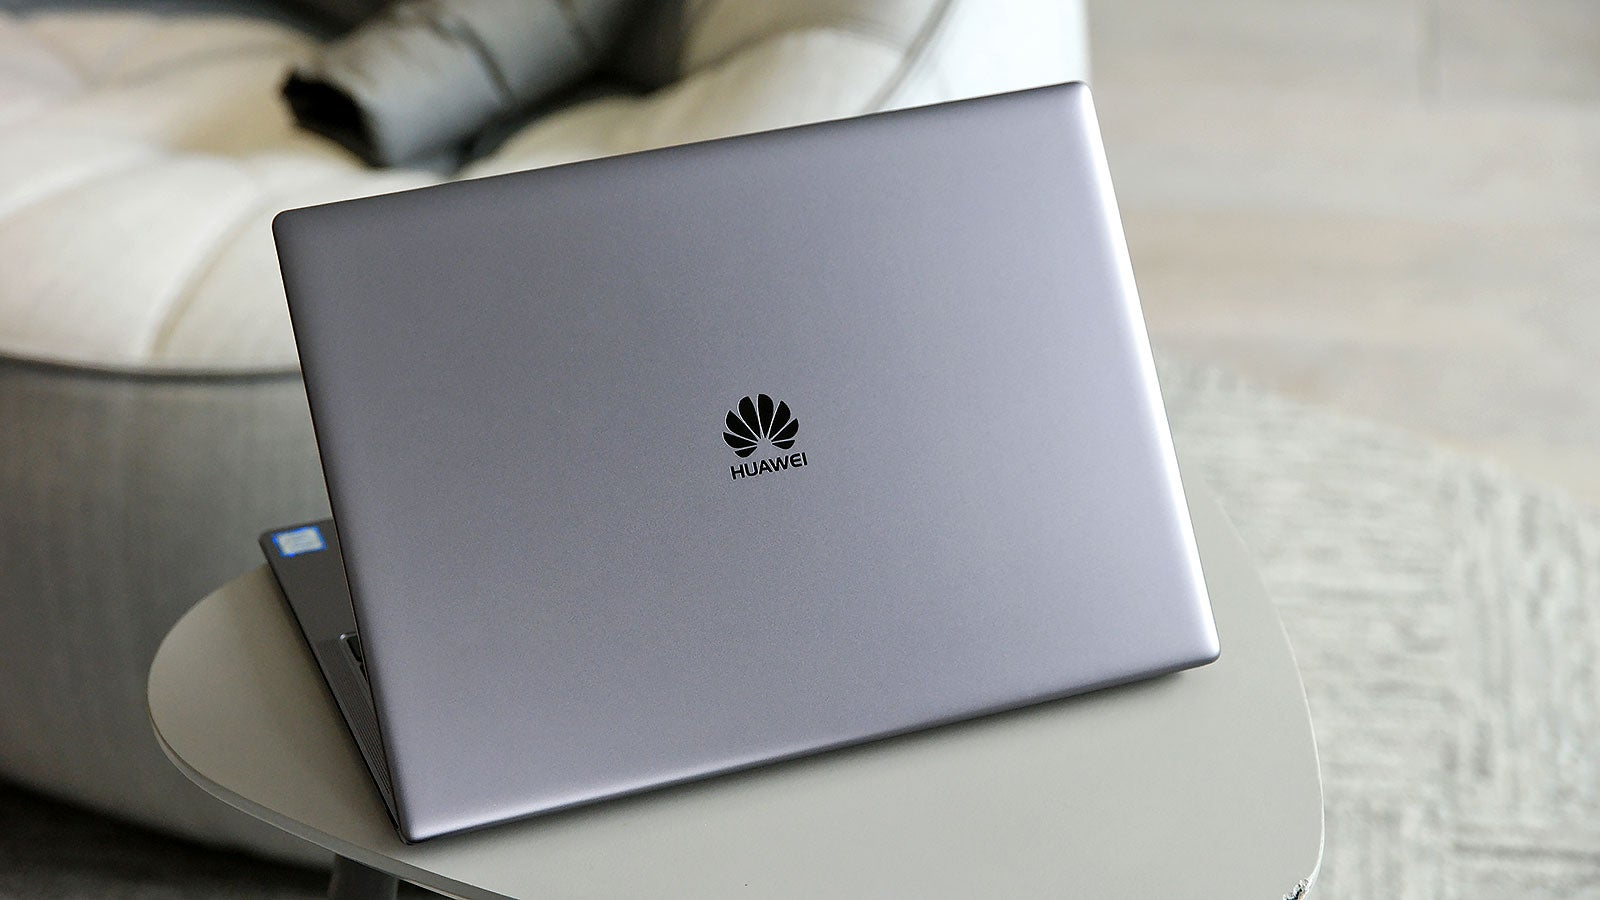 Huawei's MateBook Is The MacBook Pro People Wish Apple Would Make